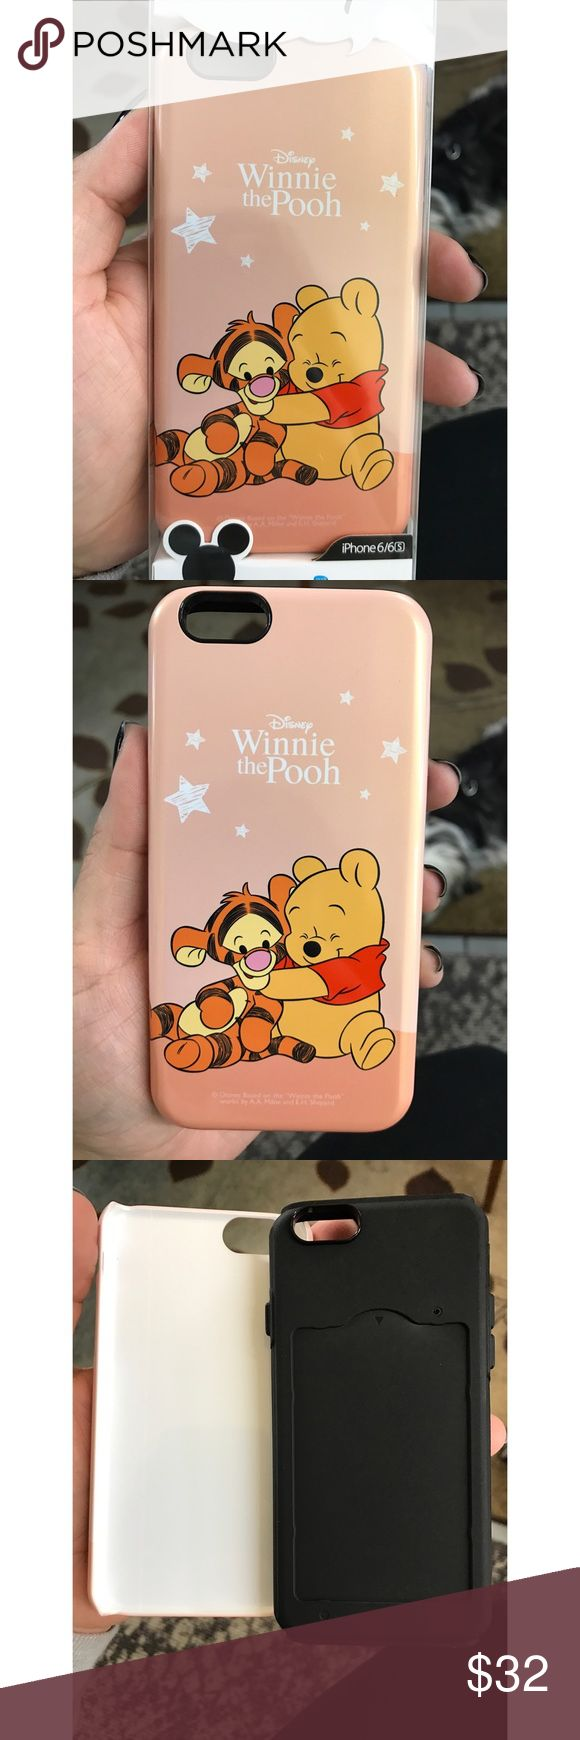 Winnie the Pooh case Super adorable Winnie the Pooh dual protection case for your iPhone 6/6s.  Perfect for those Disney fans (: These are high quality cases, also has a slot for your ID, Debit or credit card. Disney Accessories Phone Cases